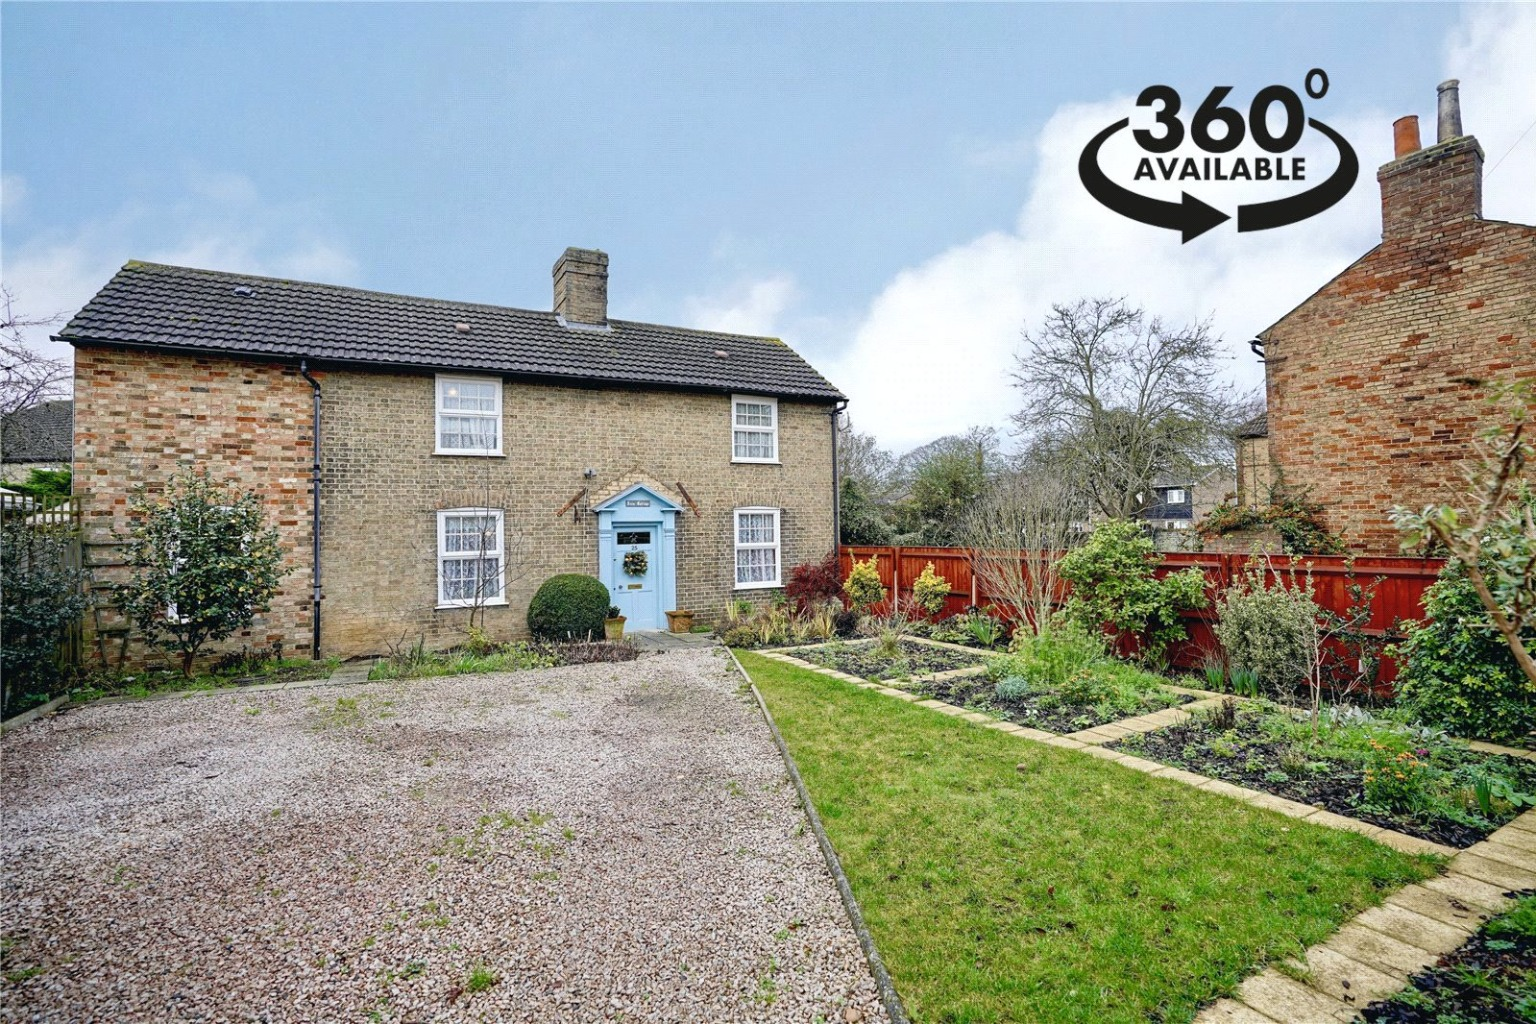 4 bed  for sale in Church Path, Sandy, SG19